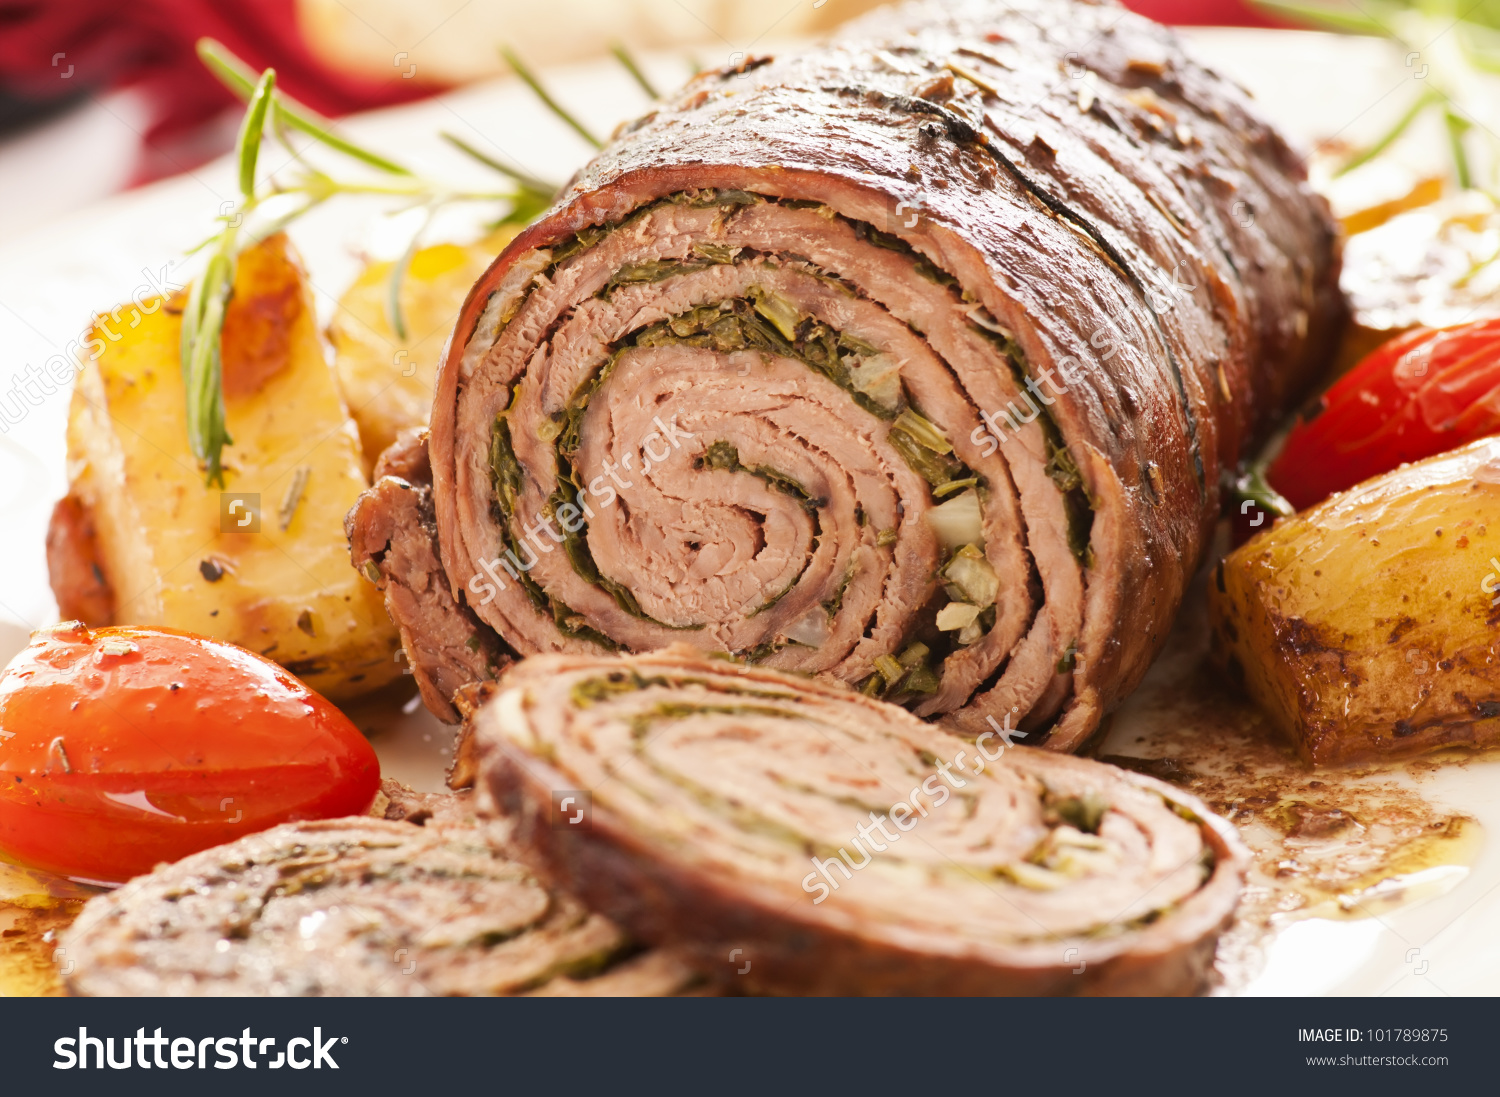 Roulade With Roasted Vegetables Stock Photo 101789875 : Shutterstock.